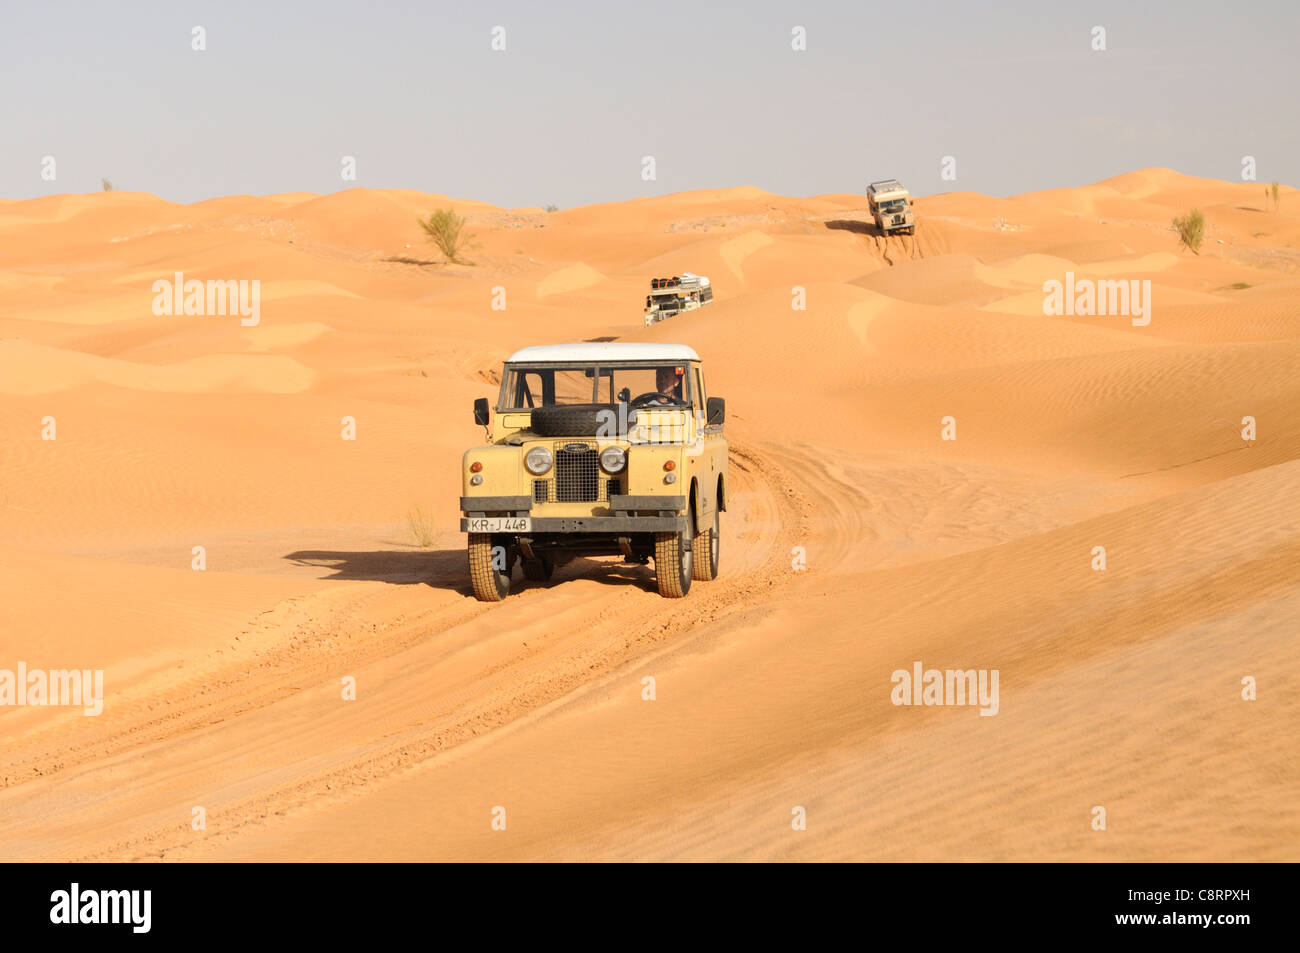 Africa, Tunisia, nr. Tembaine. Desert travellers with their historic Series Land Rovers crossing through a sandfield - Stock Image